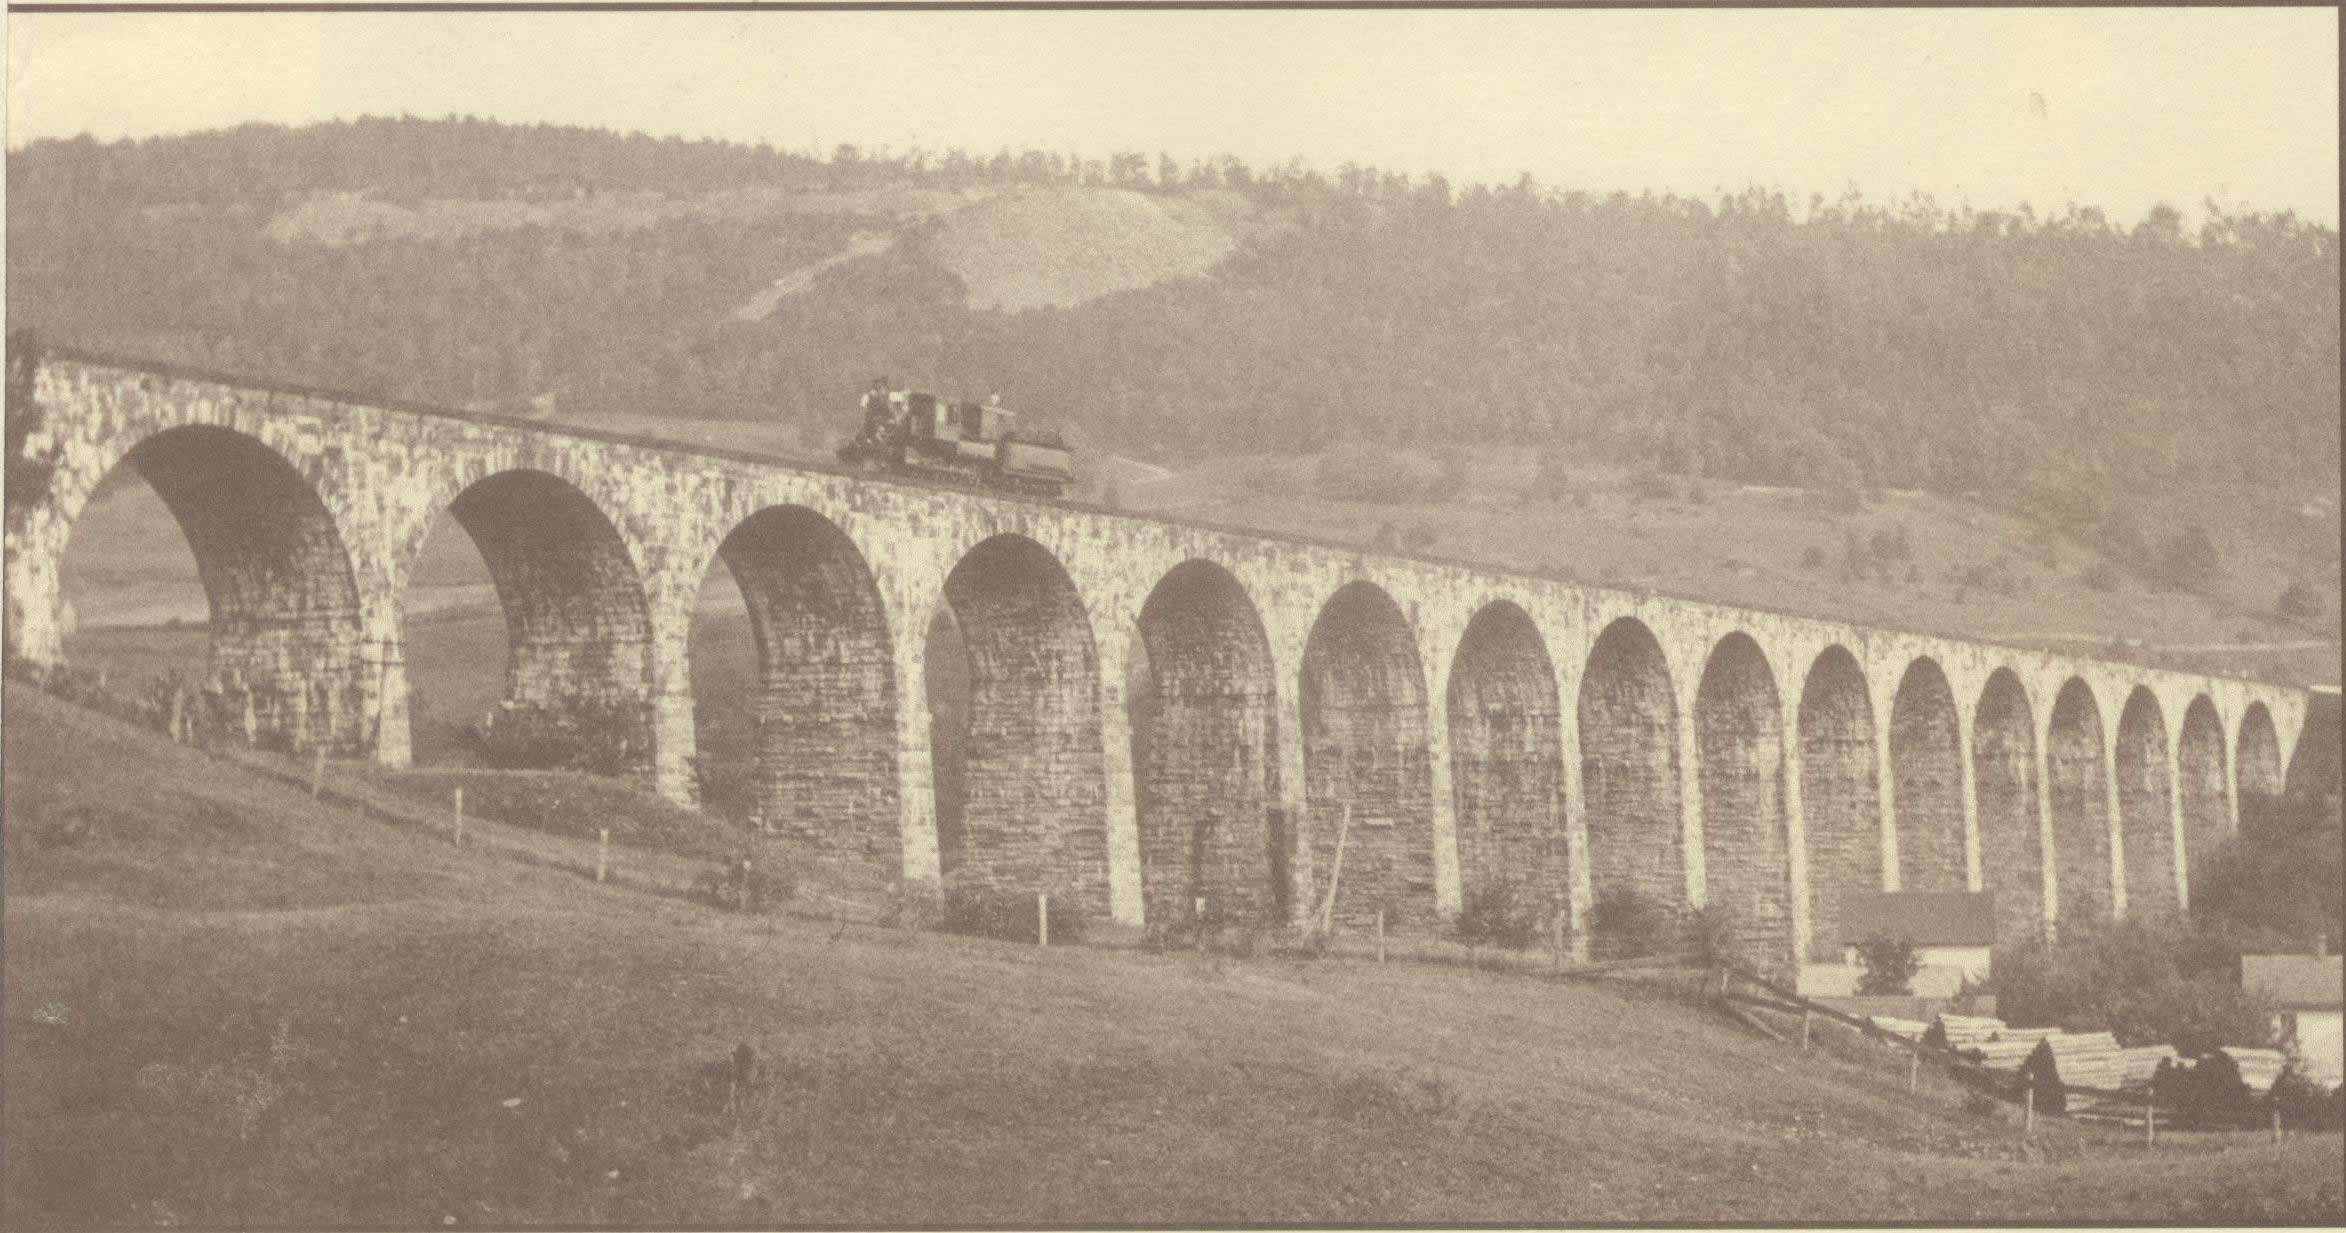 1905 Picture of the Starrucca Viaduct and train